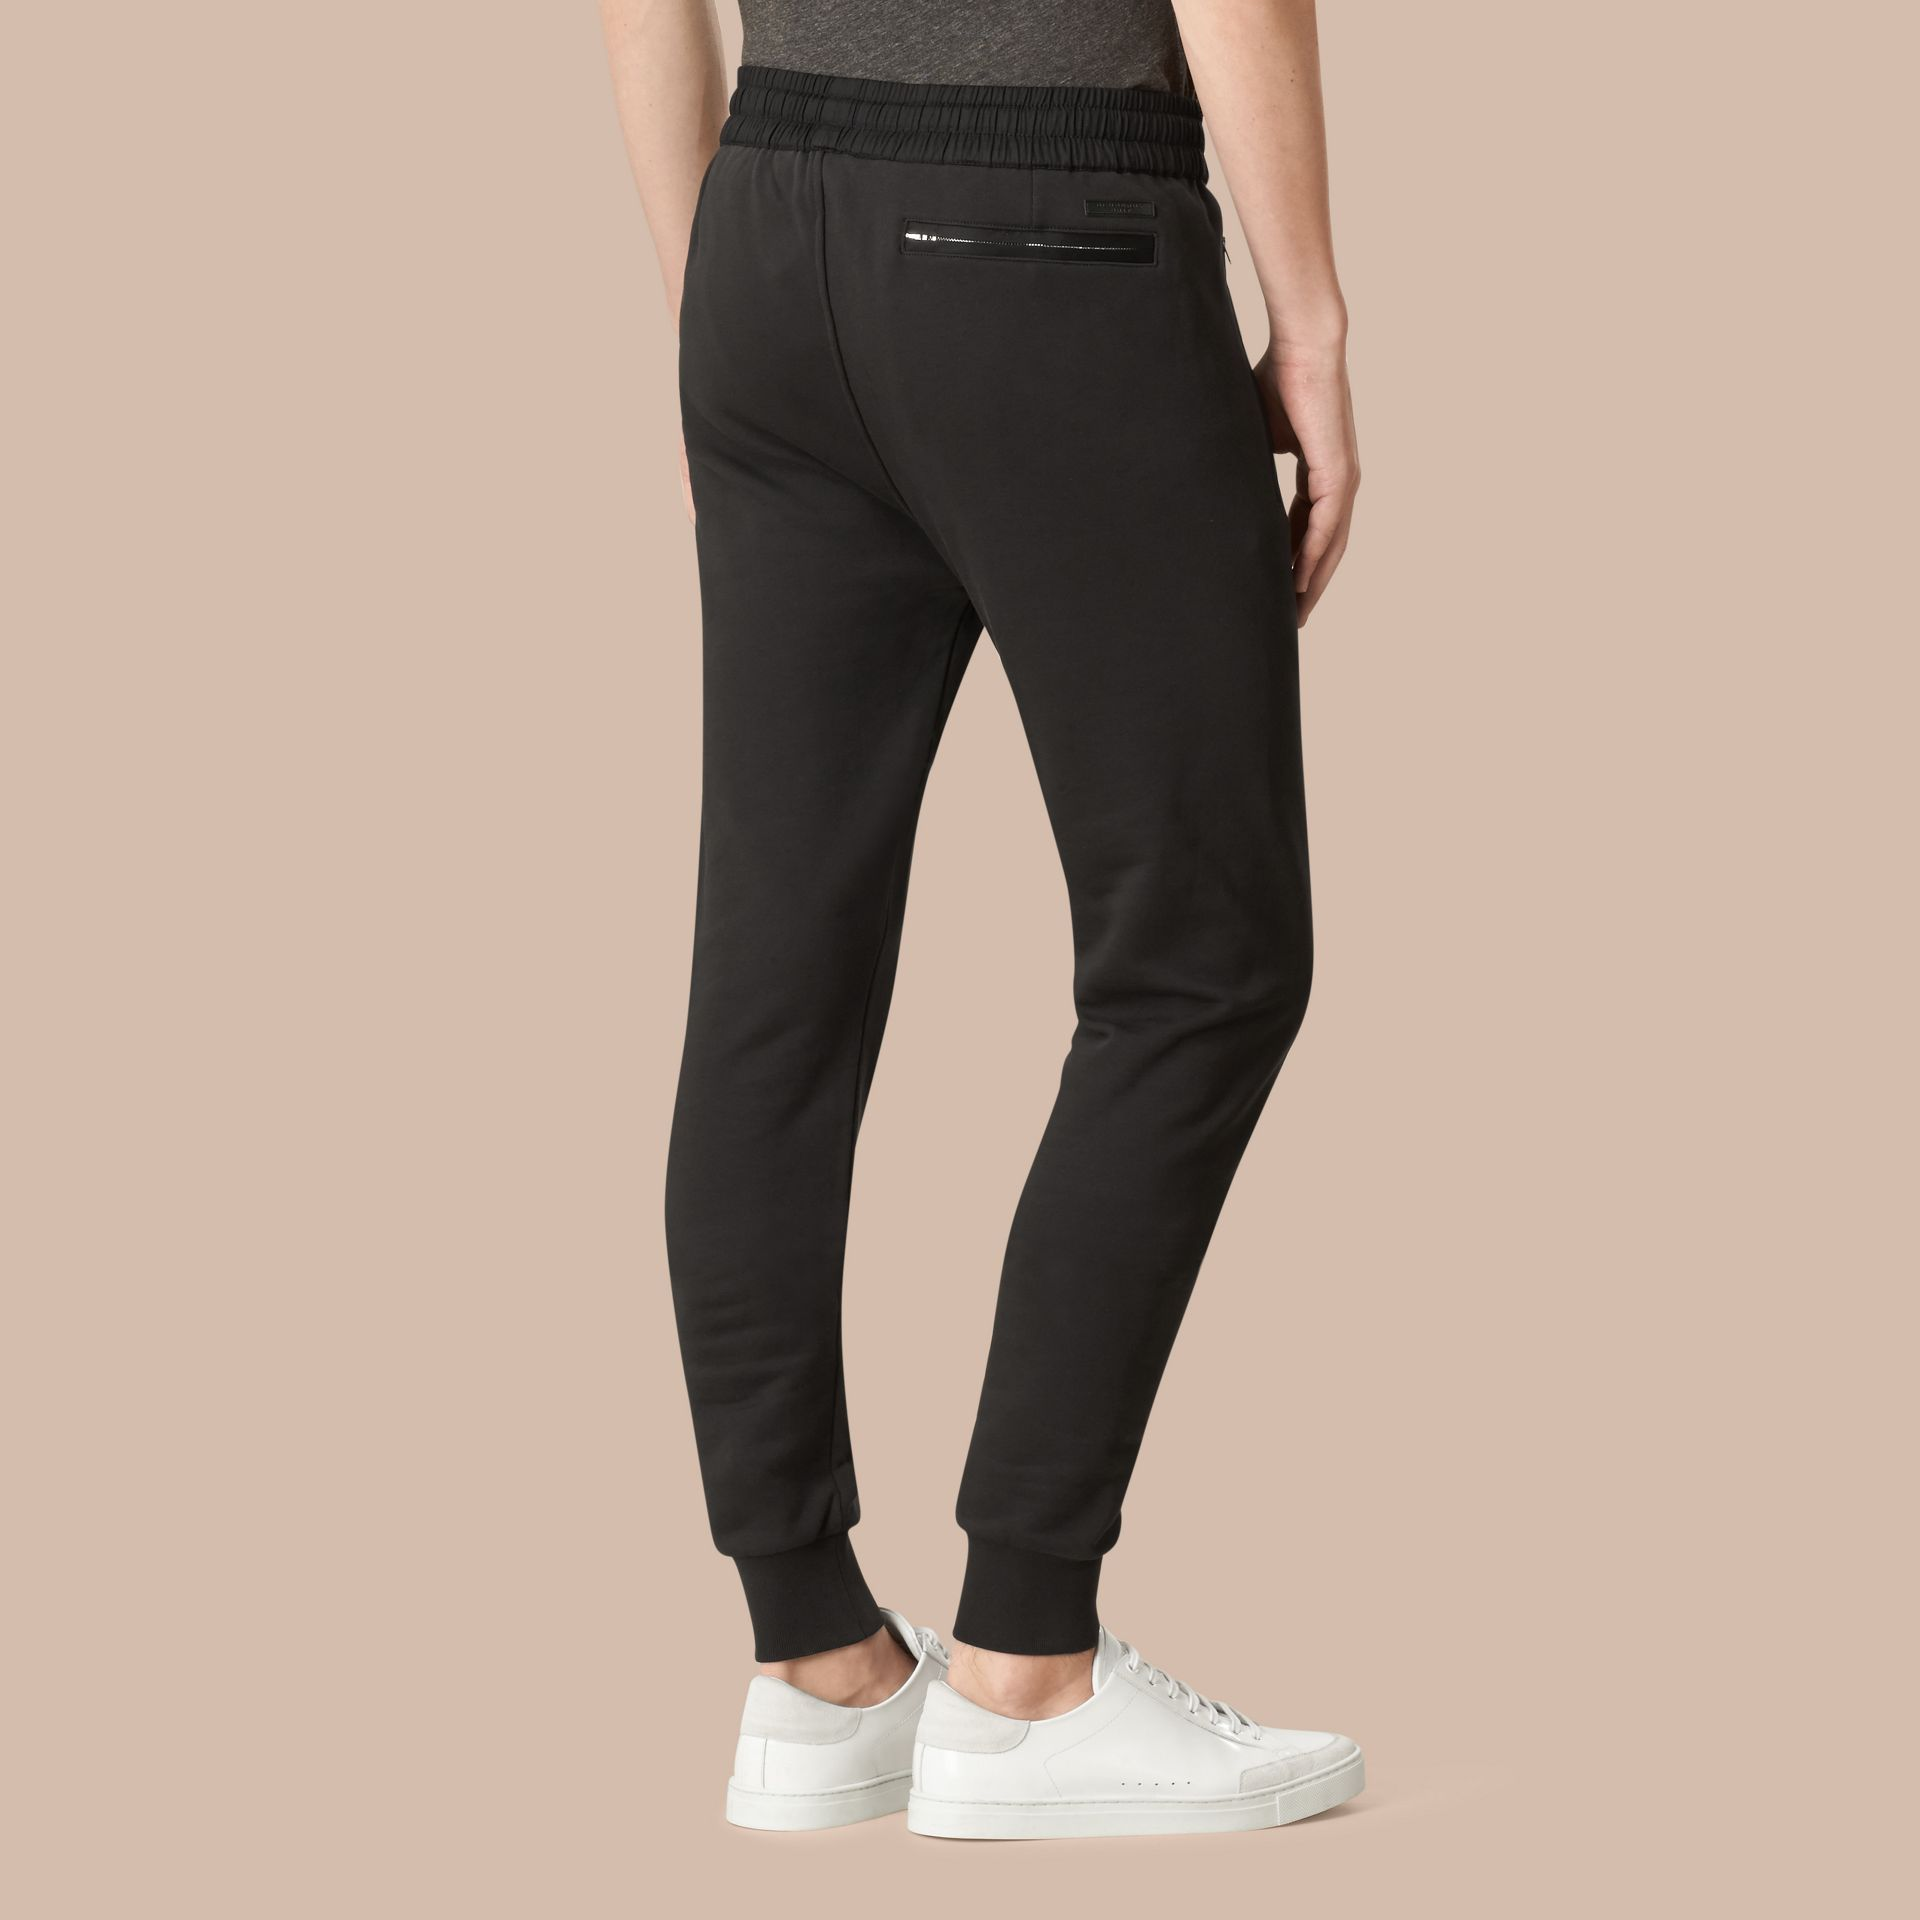 Pantalon de survêtement en coton Noir - photo de la galerie 3